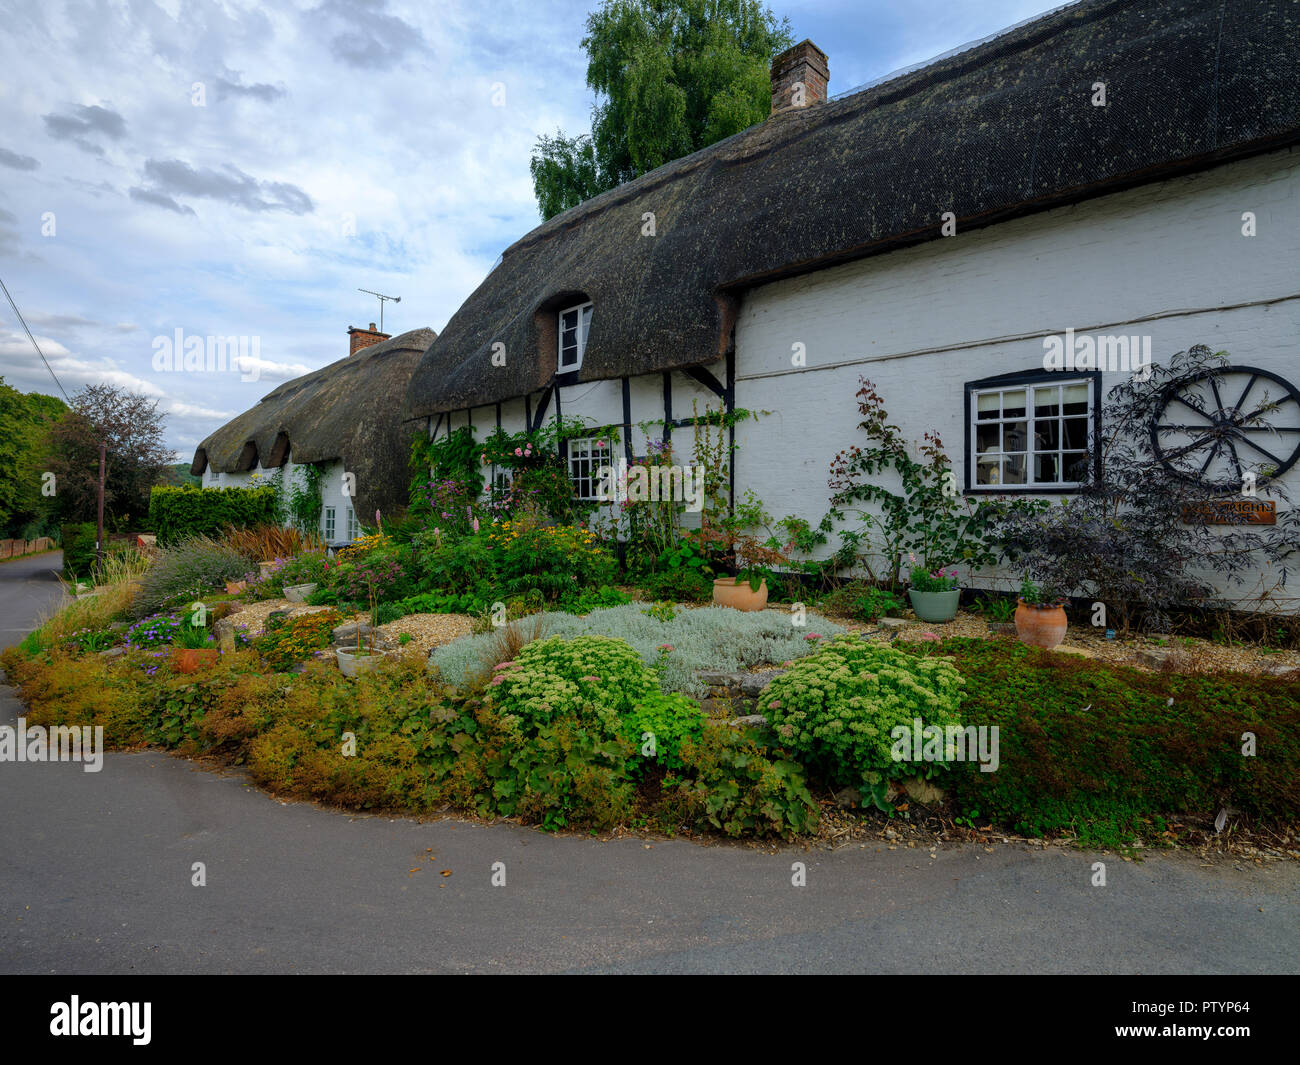 Typical Hampshire country cottage - half timbered and thatched - with pretty front garden in the village of Easton near Winchester in the South Downs  Stock Photo